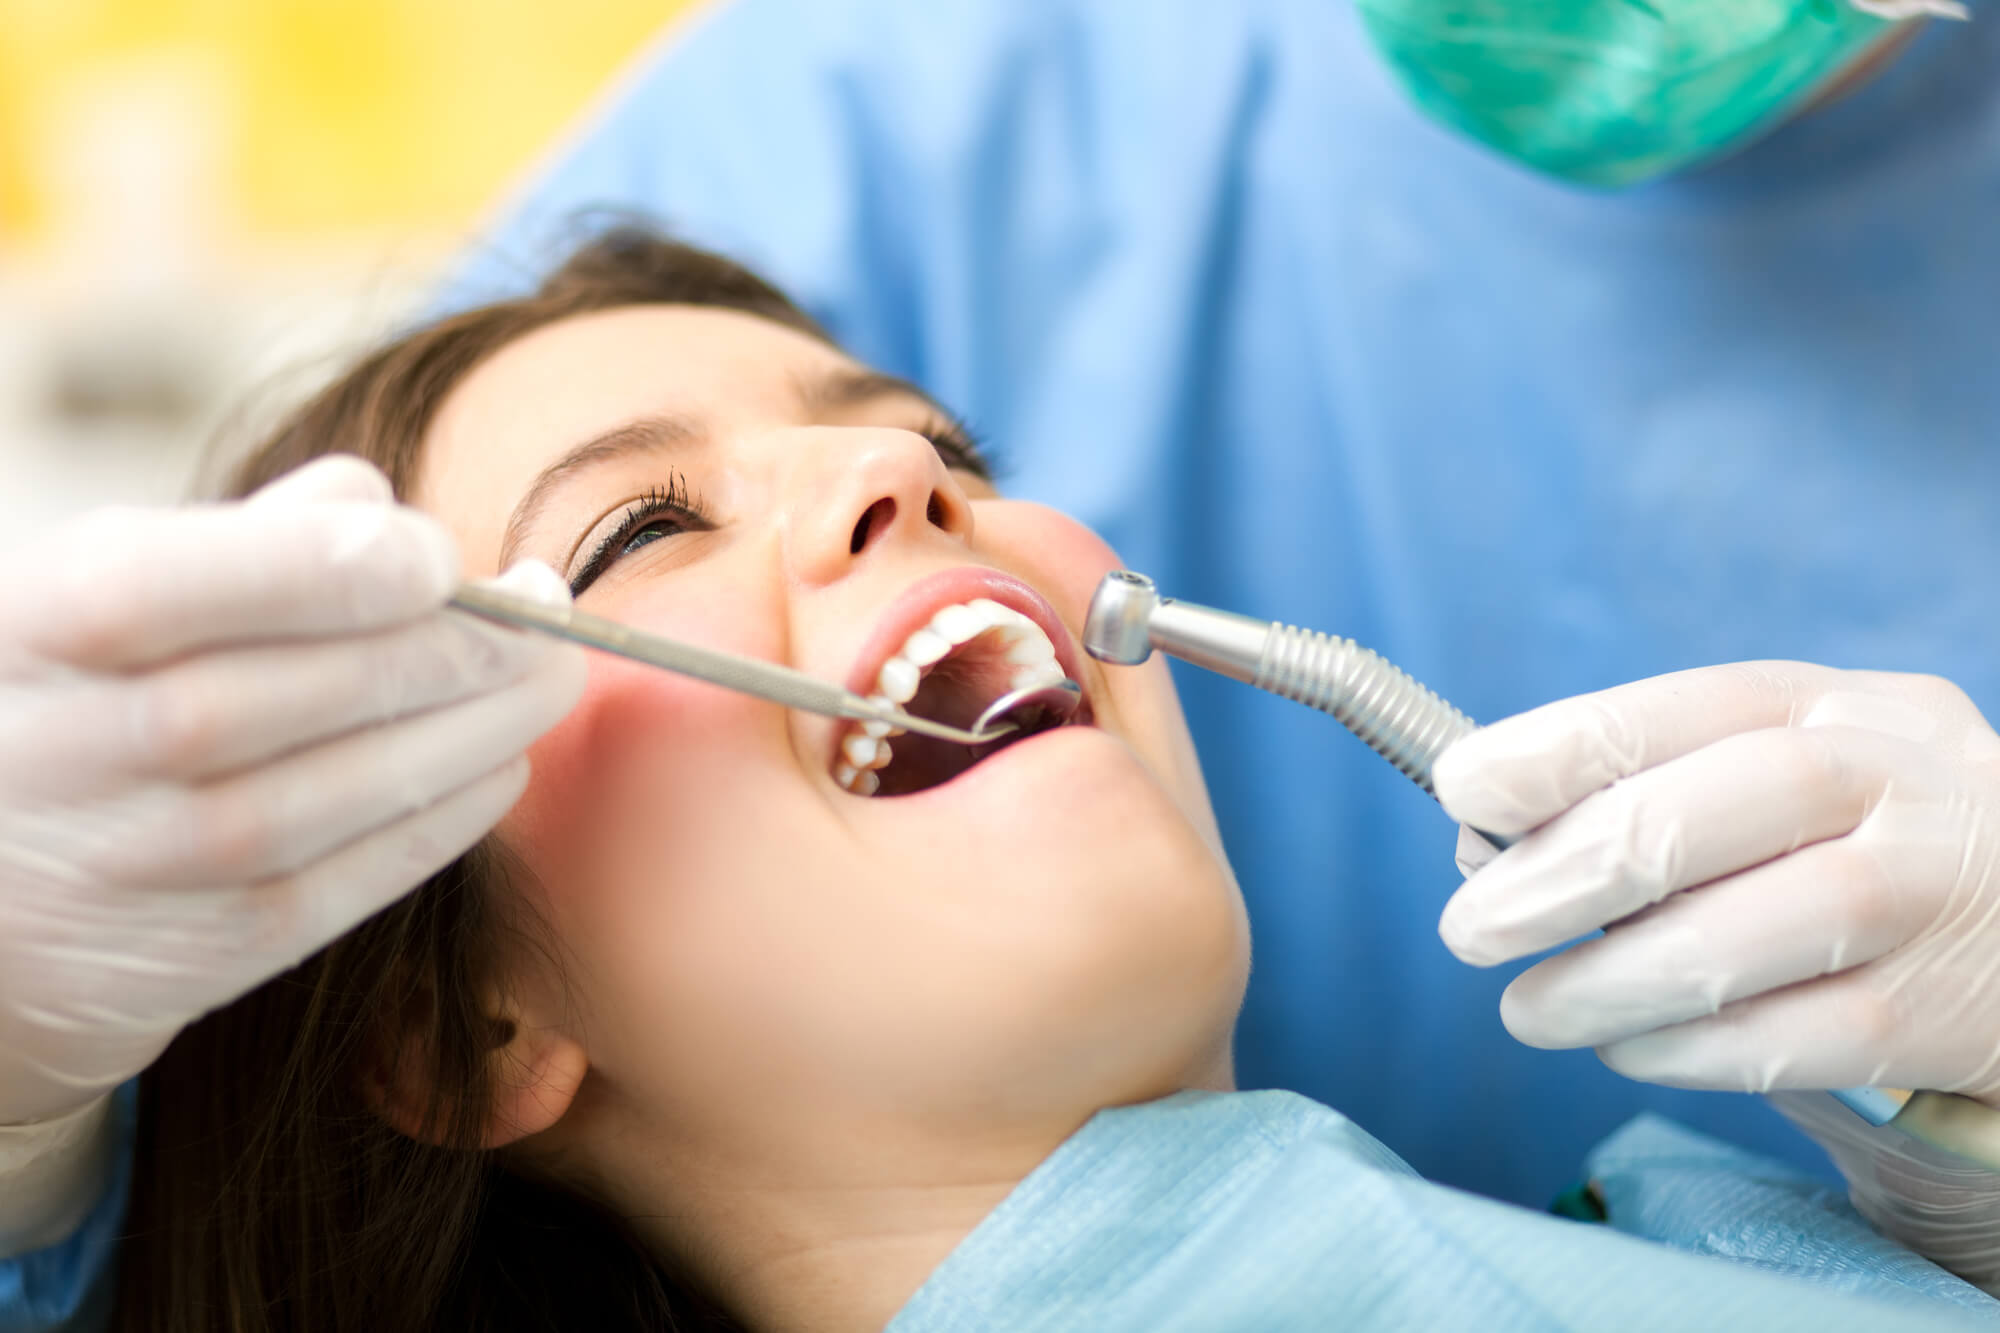 who offers a root canal Greenville sc?